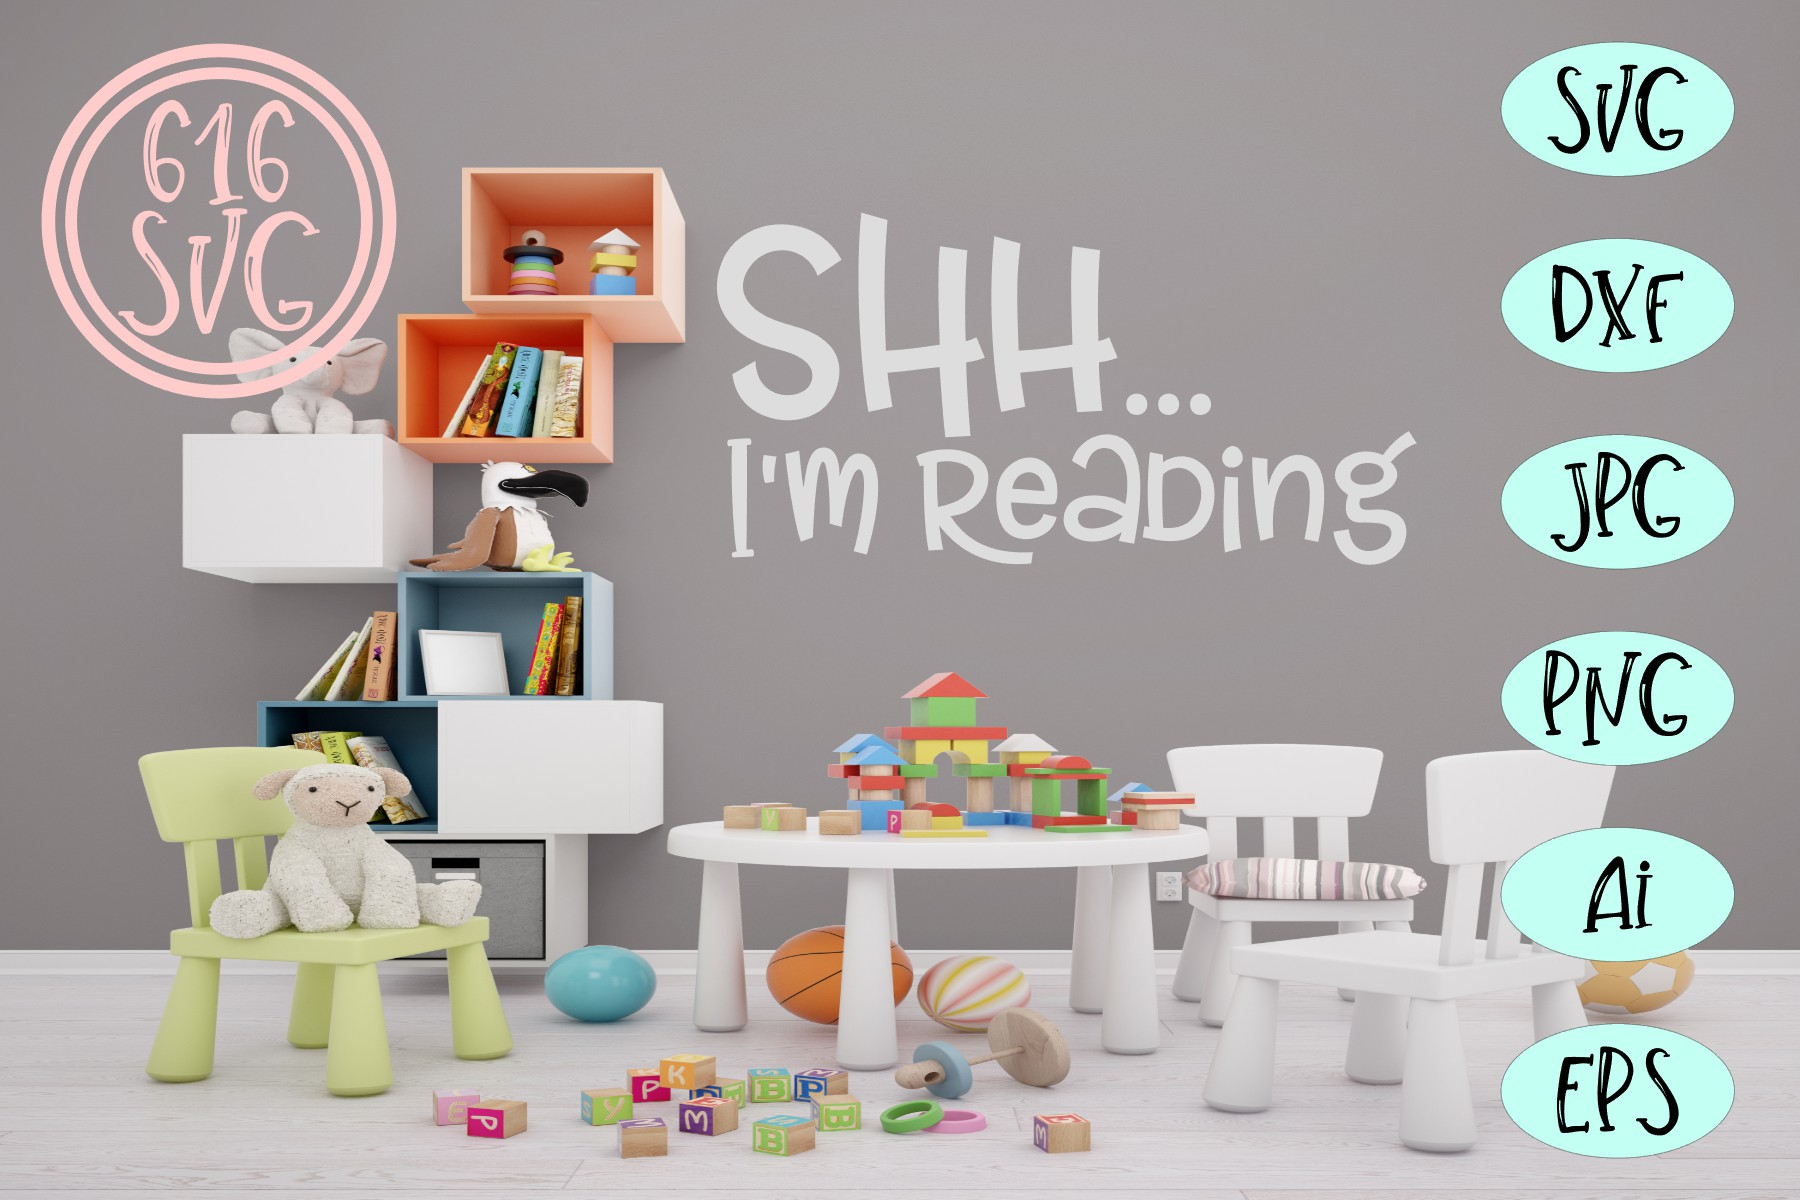 Childrens Library Bundle SVG, DXF, Ai, PNG example image 12